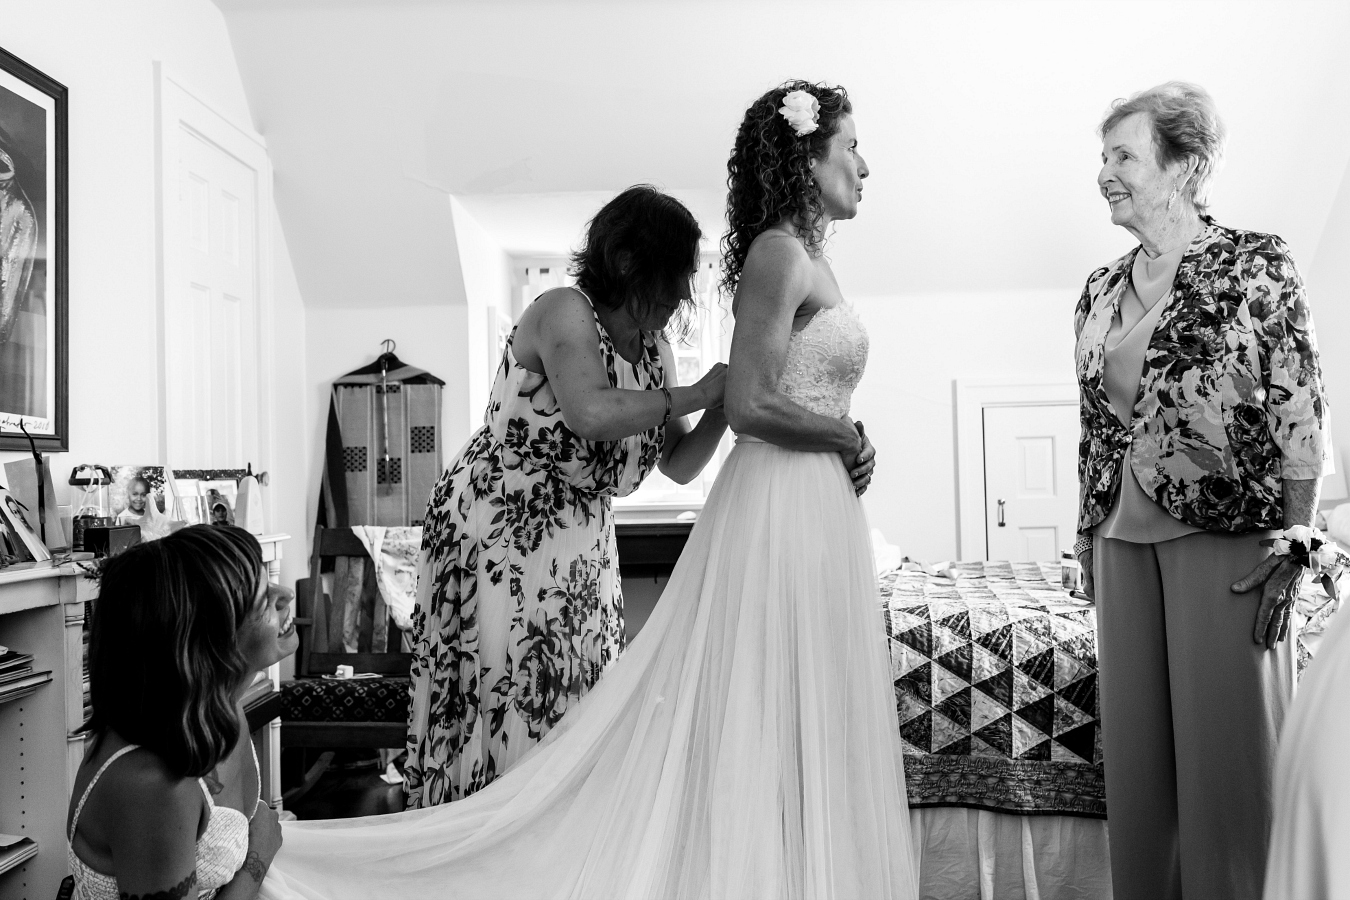 Bride Getting Dressed with Mother & Friends